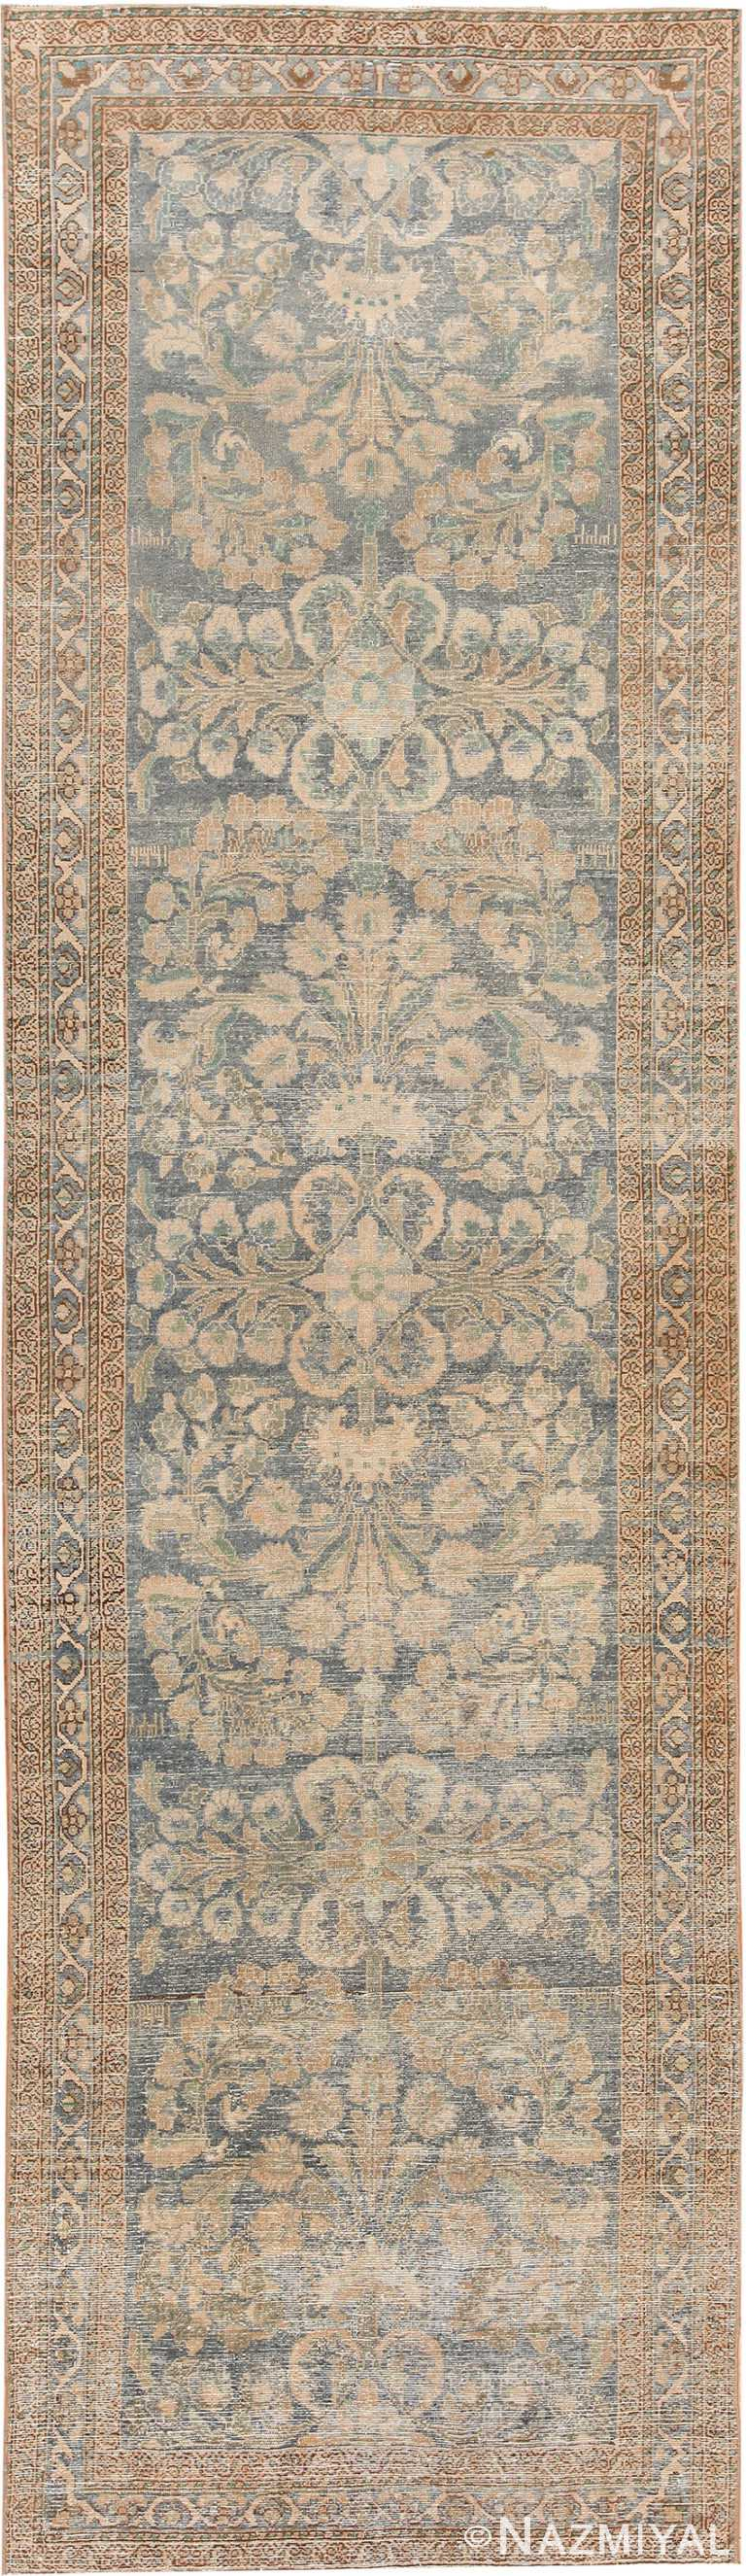 Shabby Chic Antique Persian Malayer Runner Rug 70436 by Nazmiyal NYC